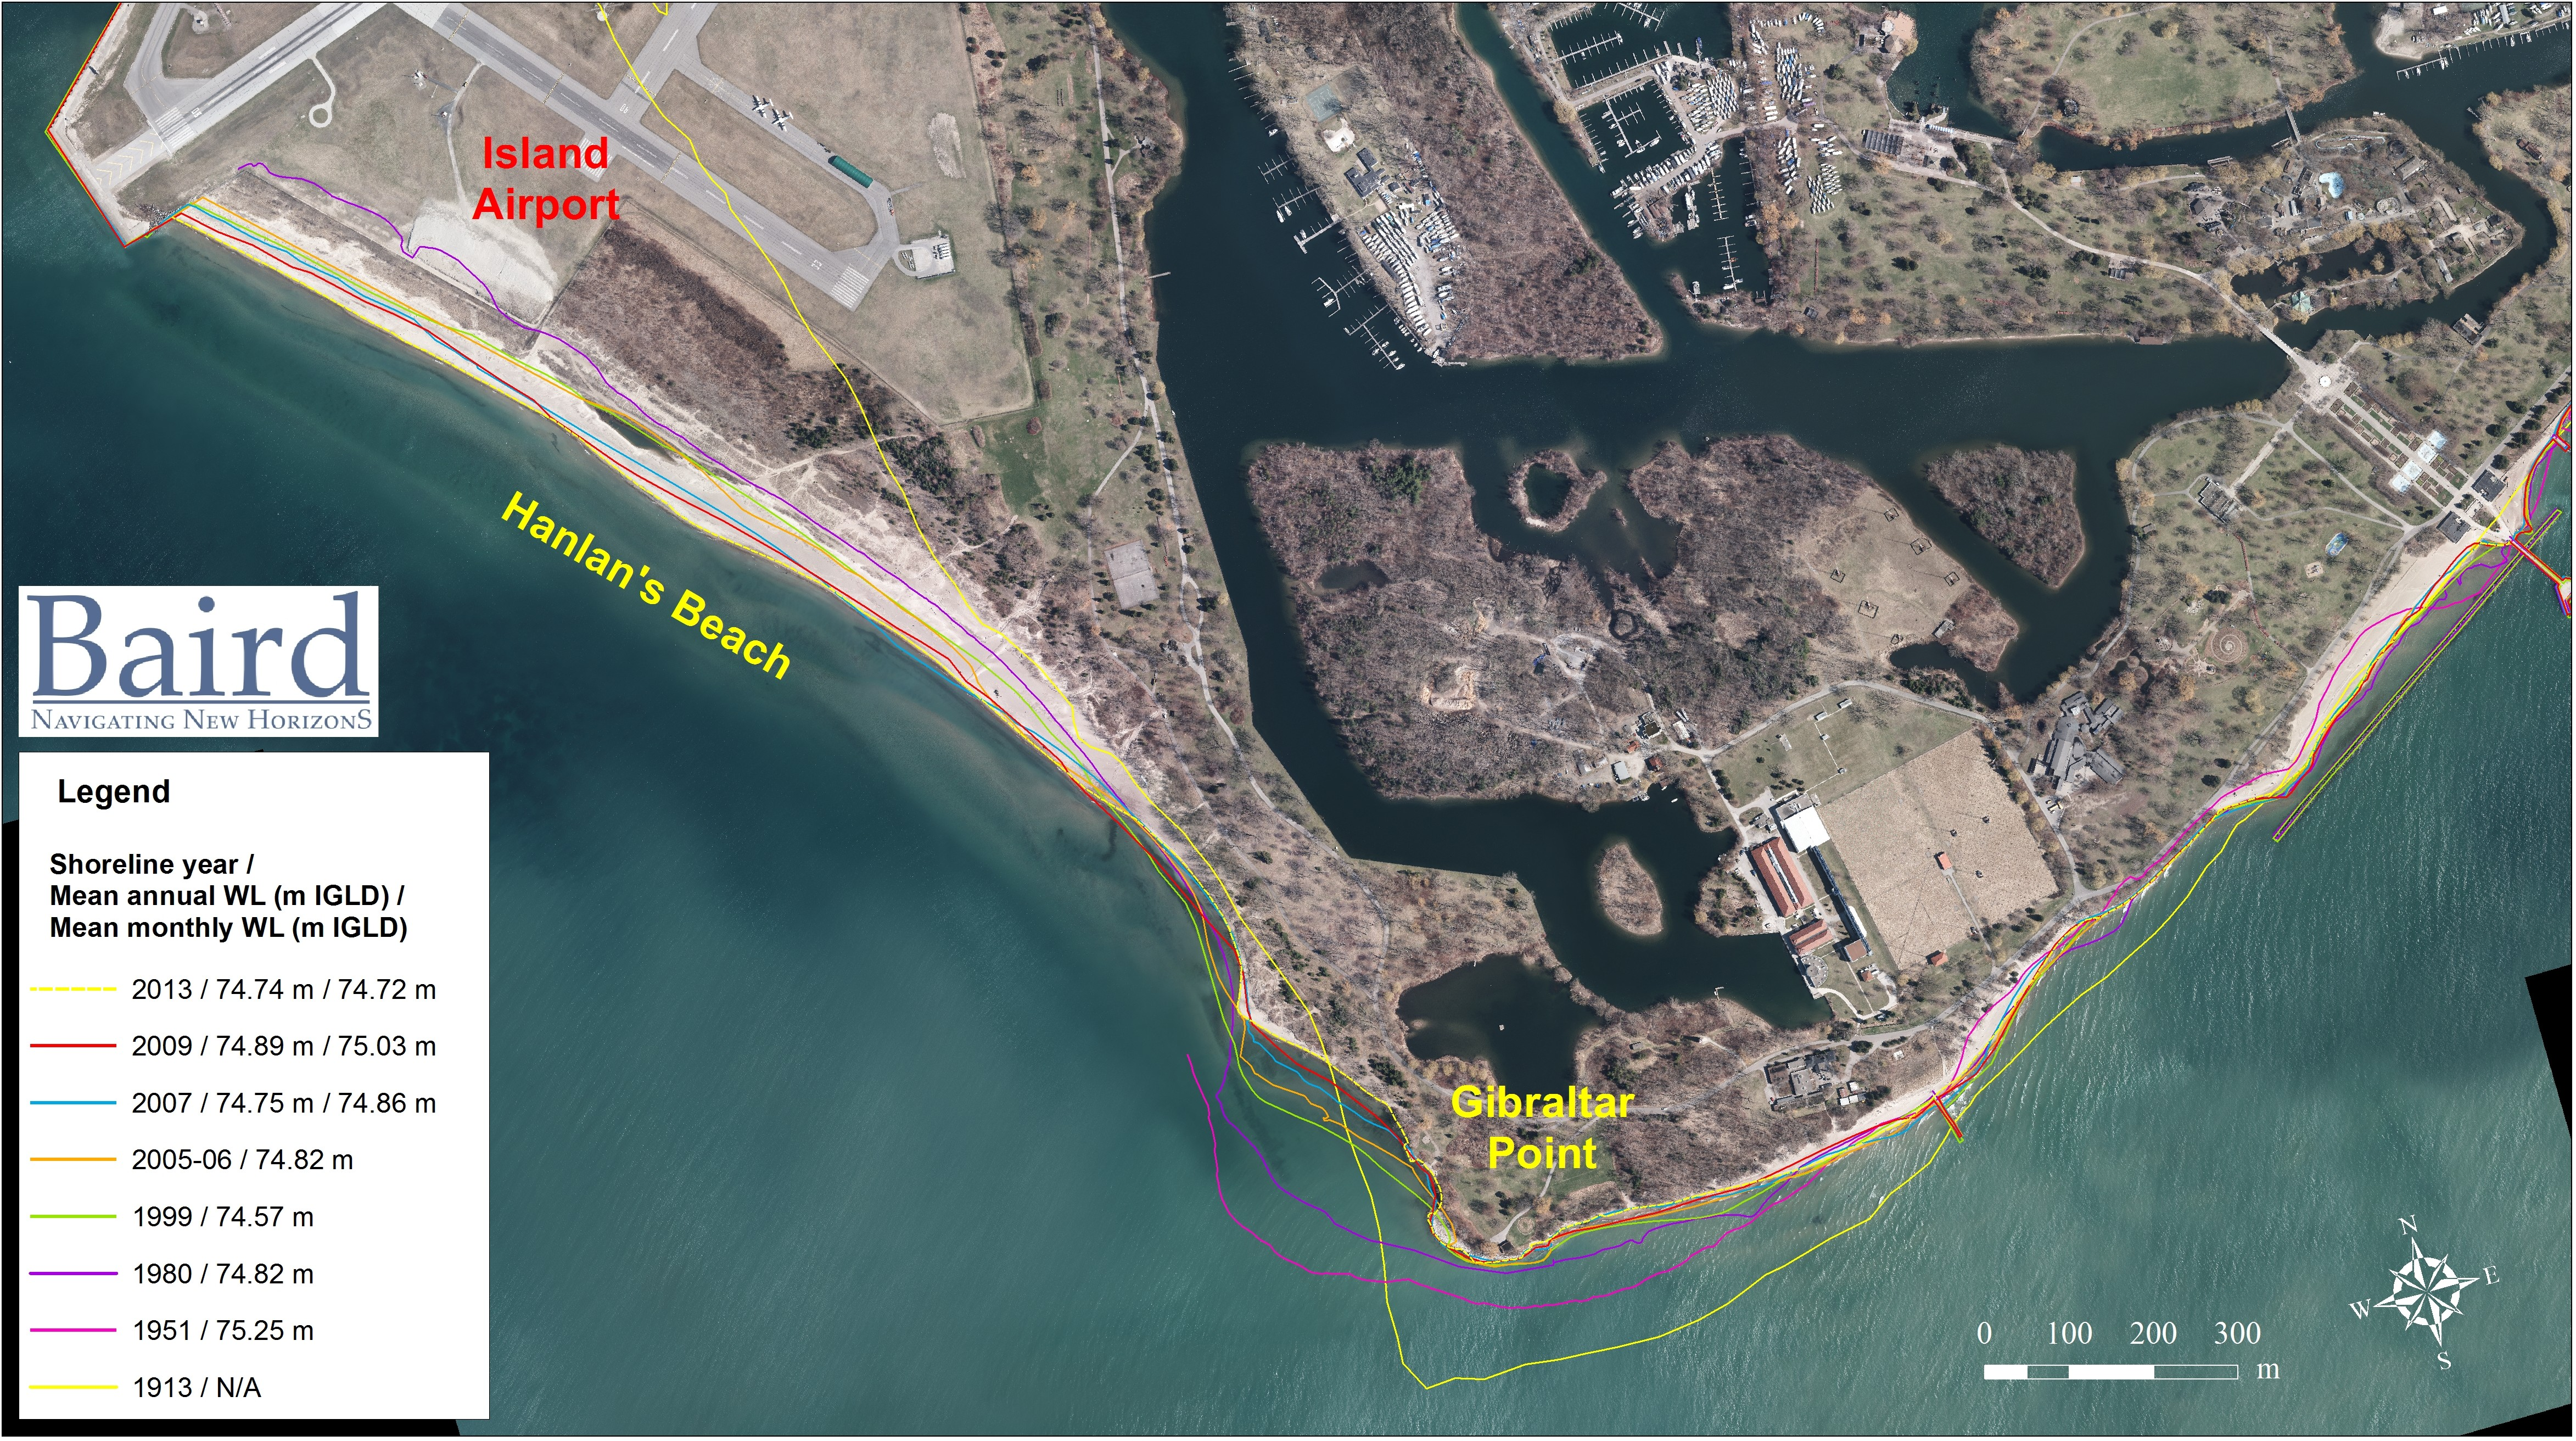 Gibraltar Point Erosion Control Project Historic Shoreline from 1913 to 2013